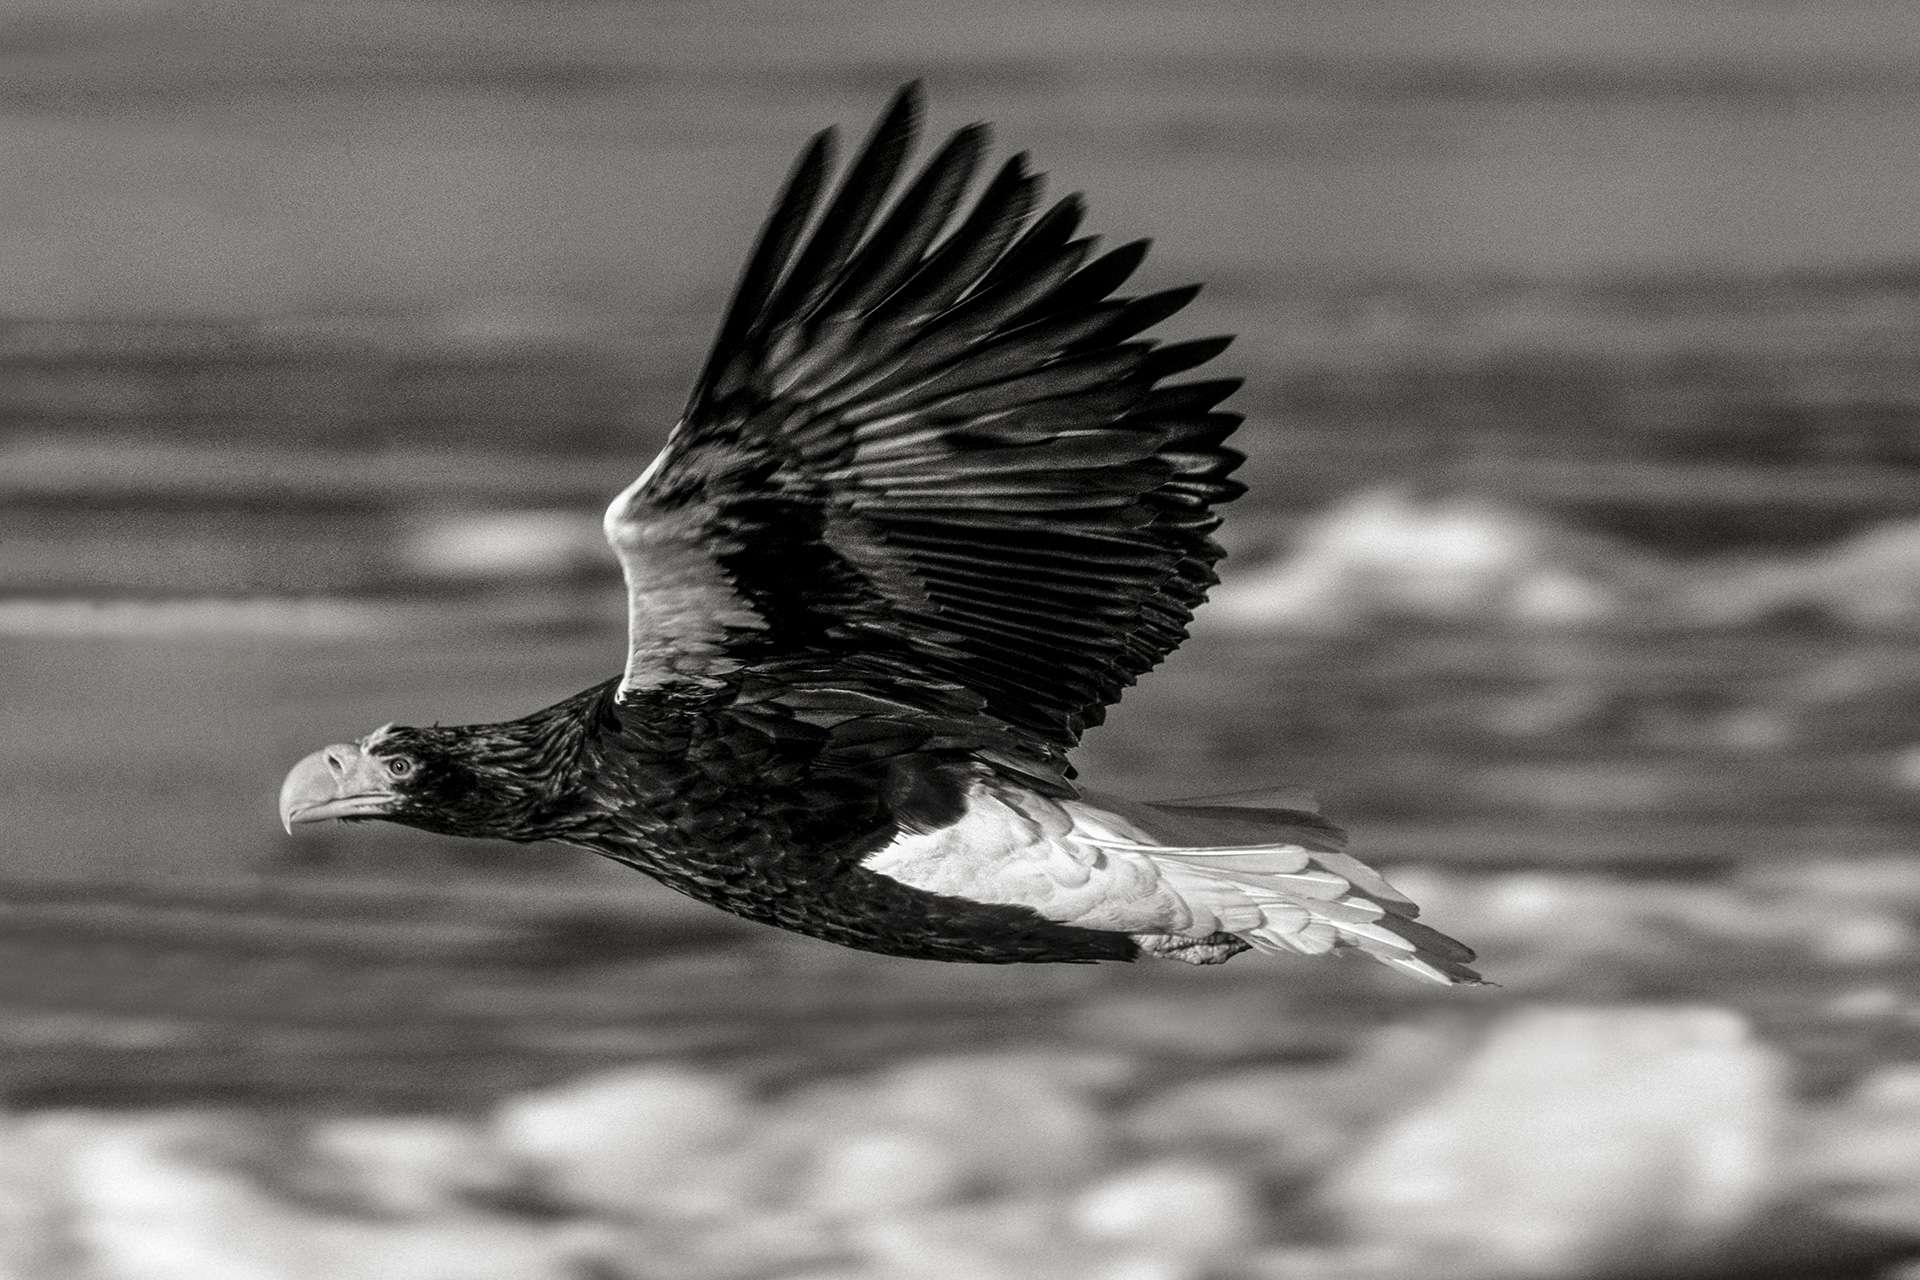 Gilles Martin's photograph : steller's sea eagle from Japan, Struggle for life